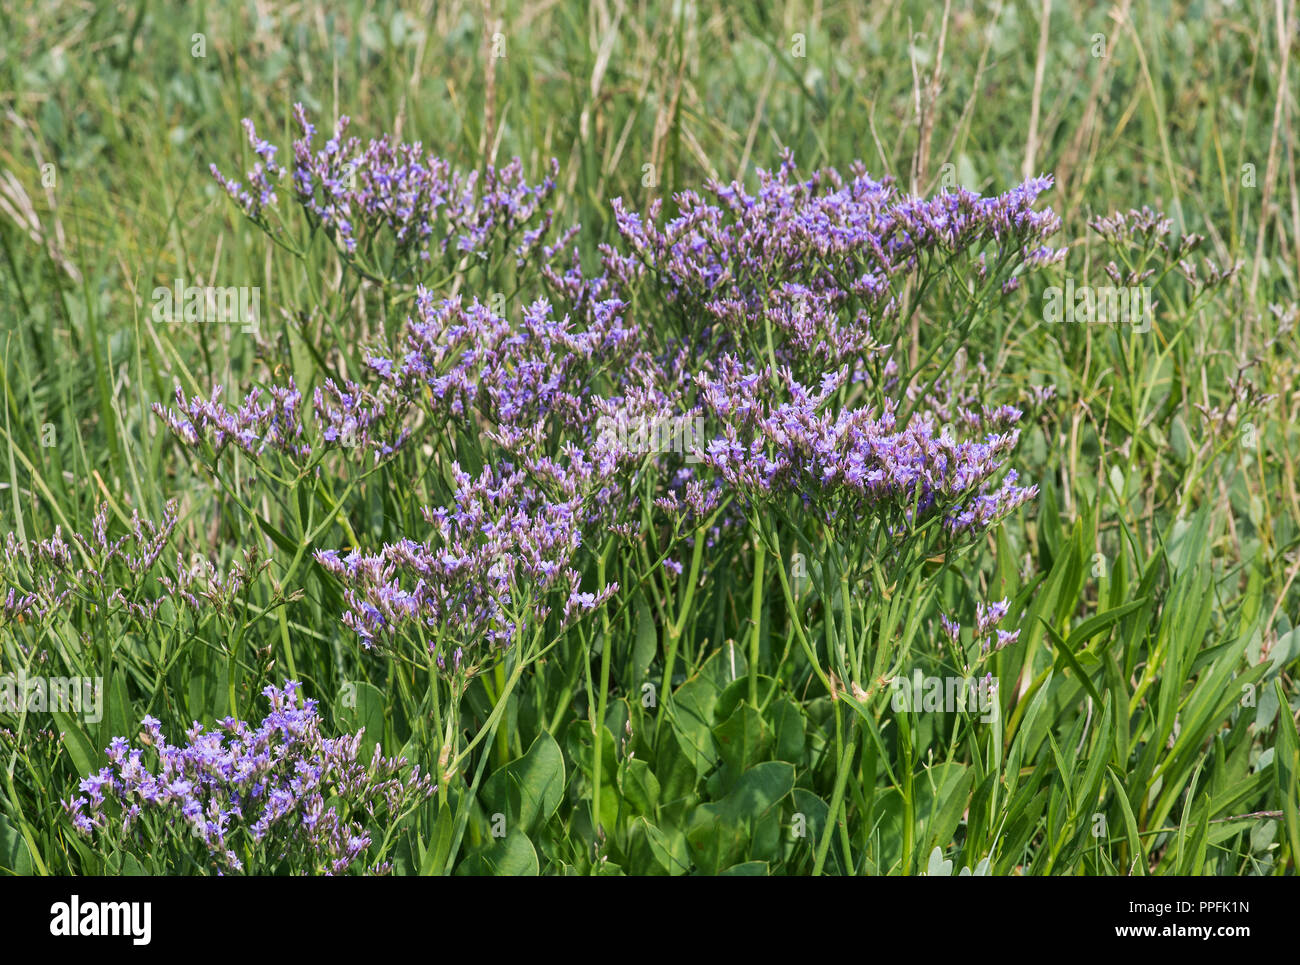 Blooming common sea lavender (Limonium vulgare), salt meadow in the intertidal zone at the North Sea coast, Schleswig-Holstein Stock Photo